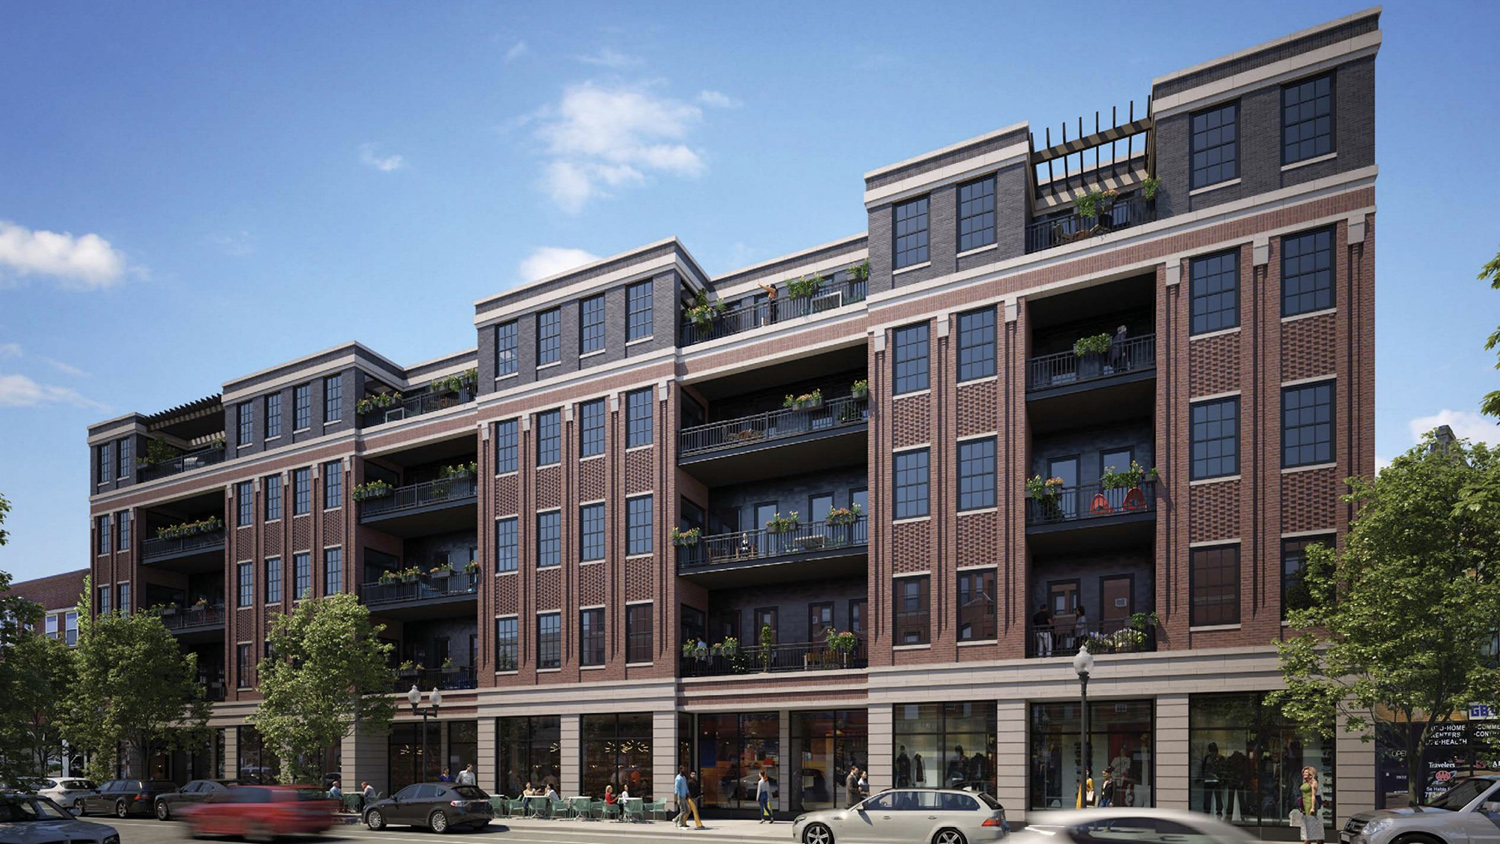 3914 N Lincoln Avenue. Rendering by SPACE Architects + Planners